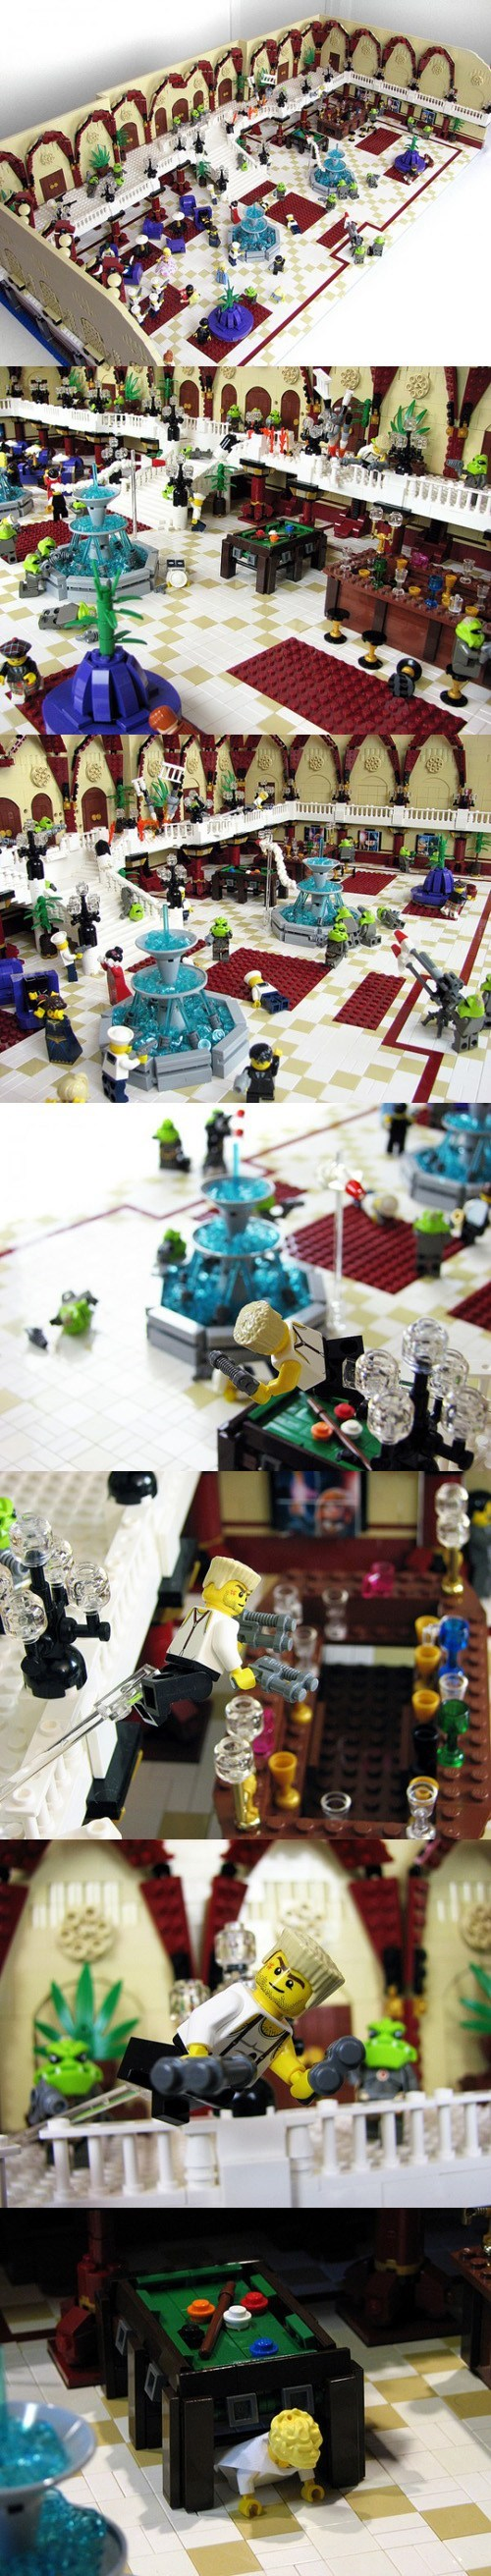 Fhloston Paradise lego scene building the fifth element